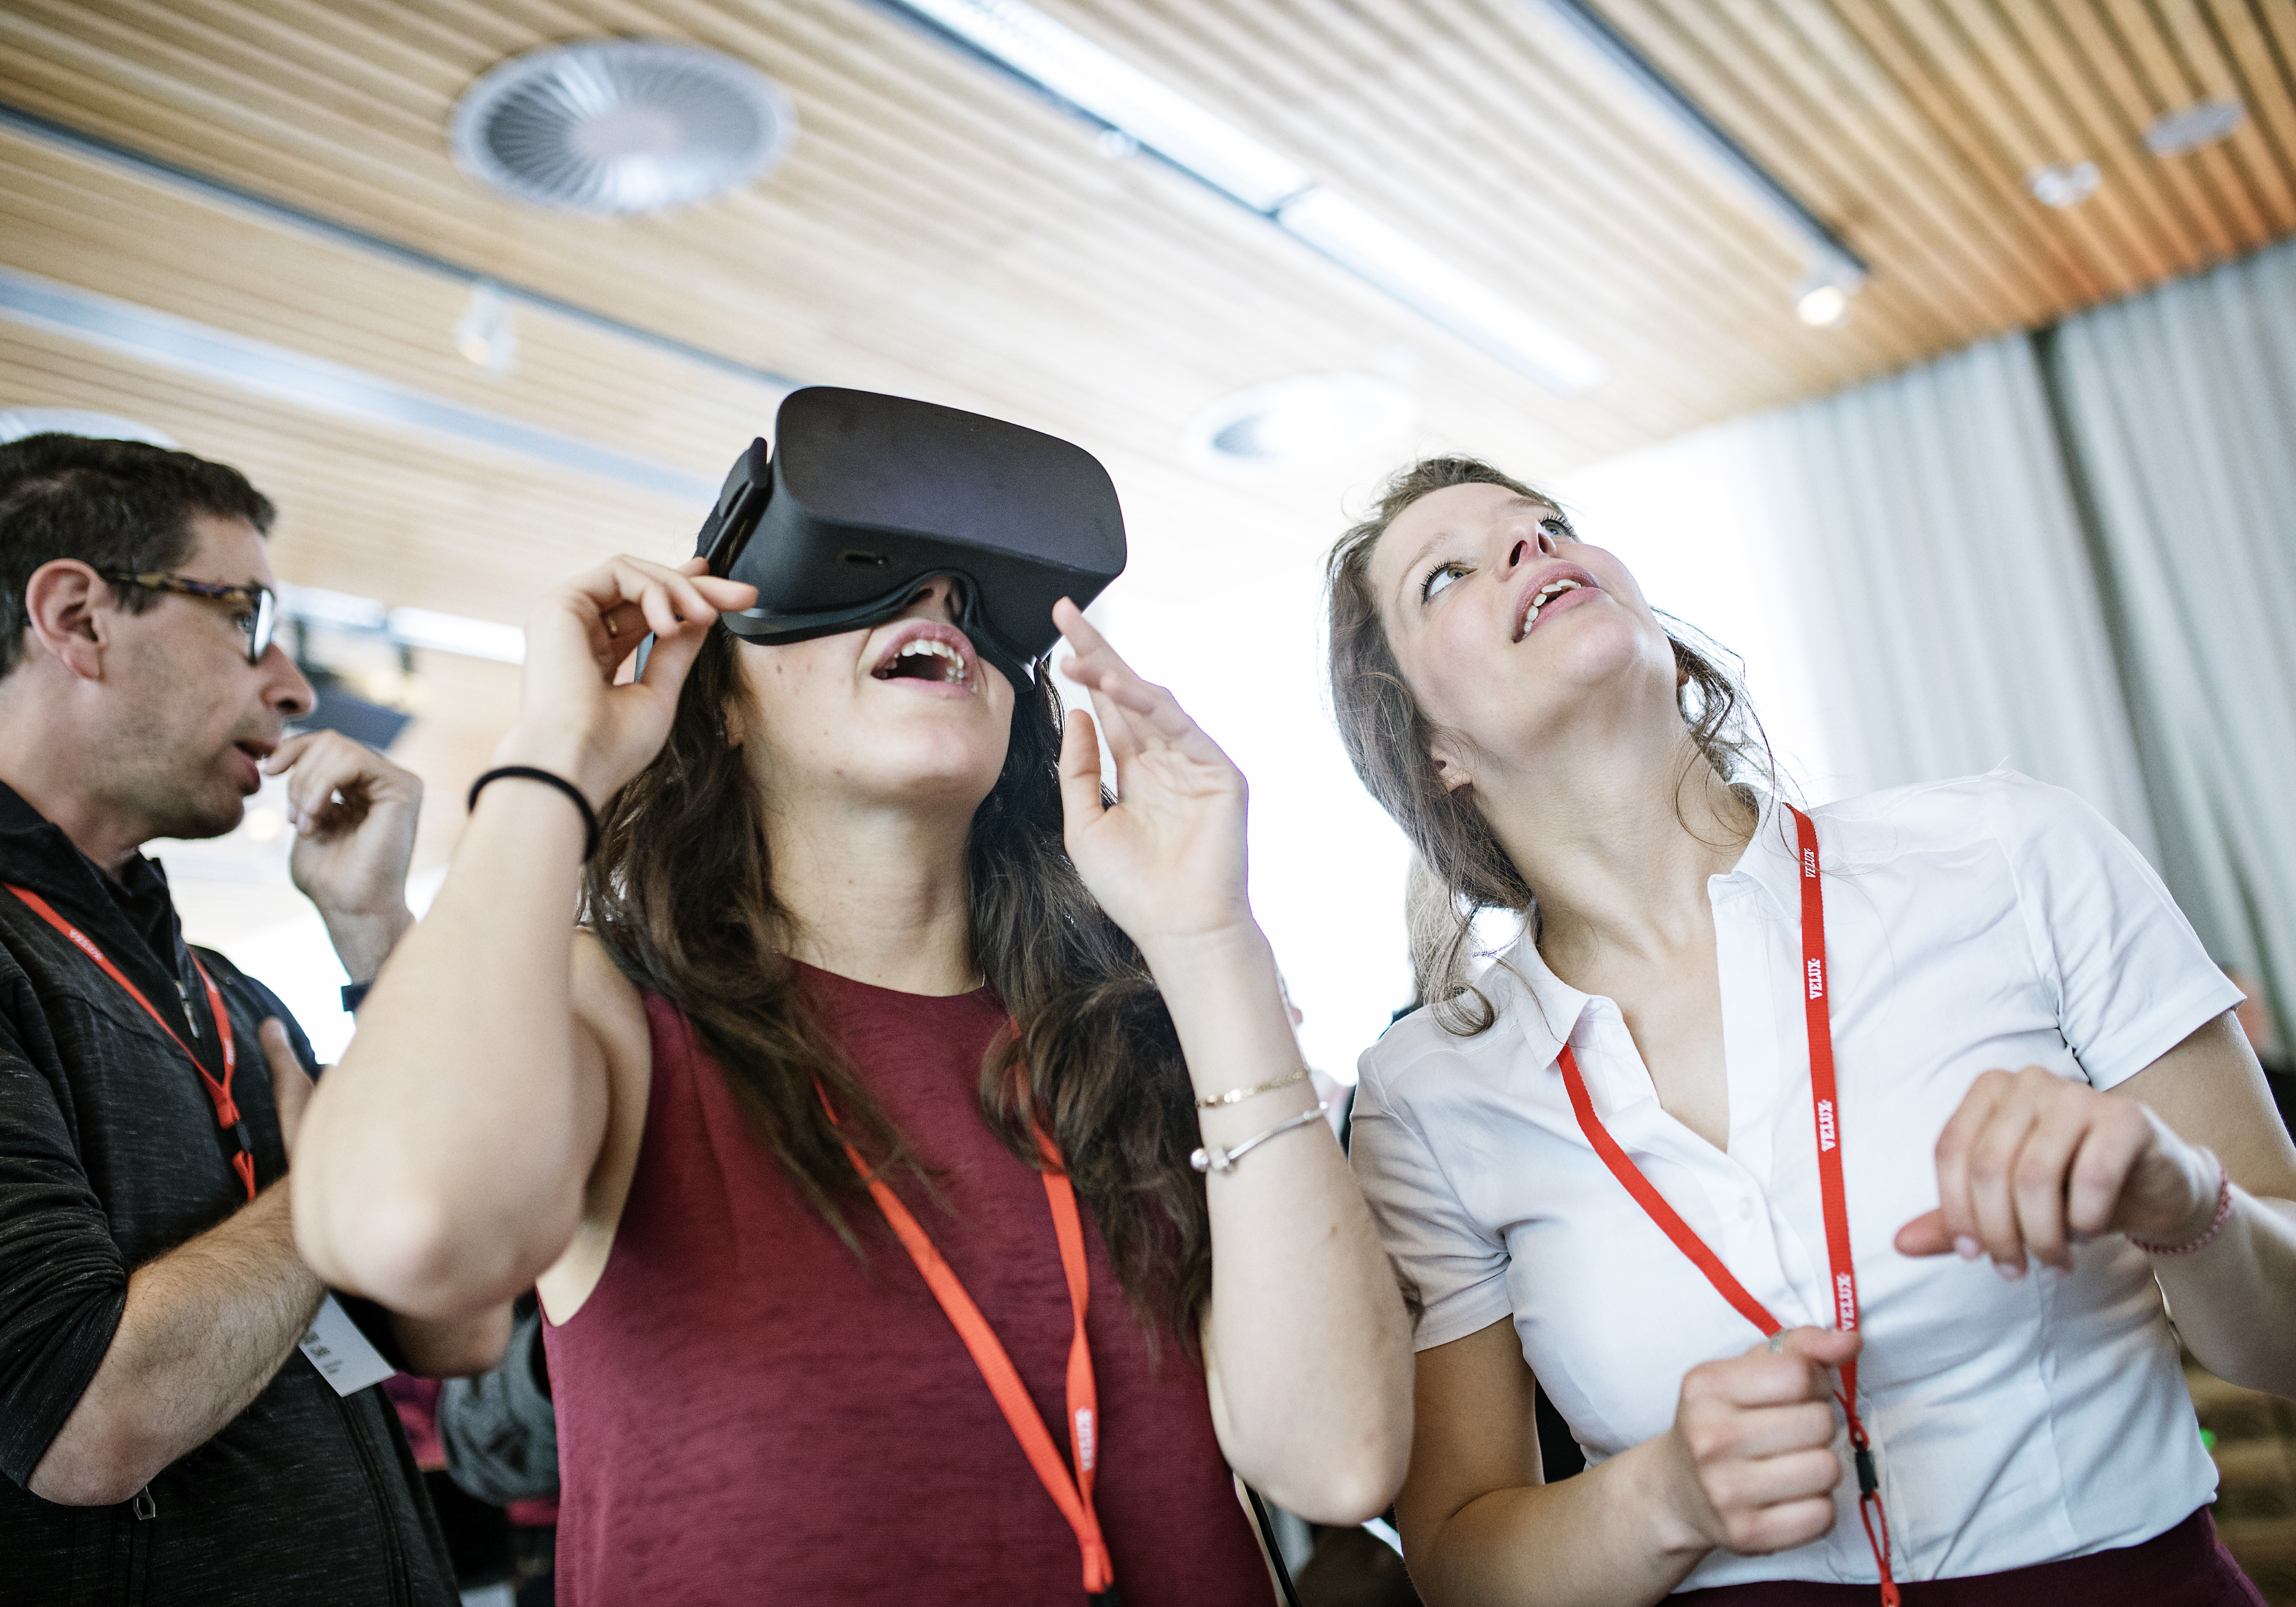 VR / Virtual Reality at the 7th VELUX Symposium